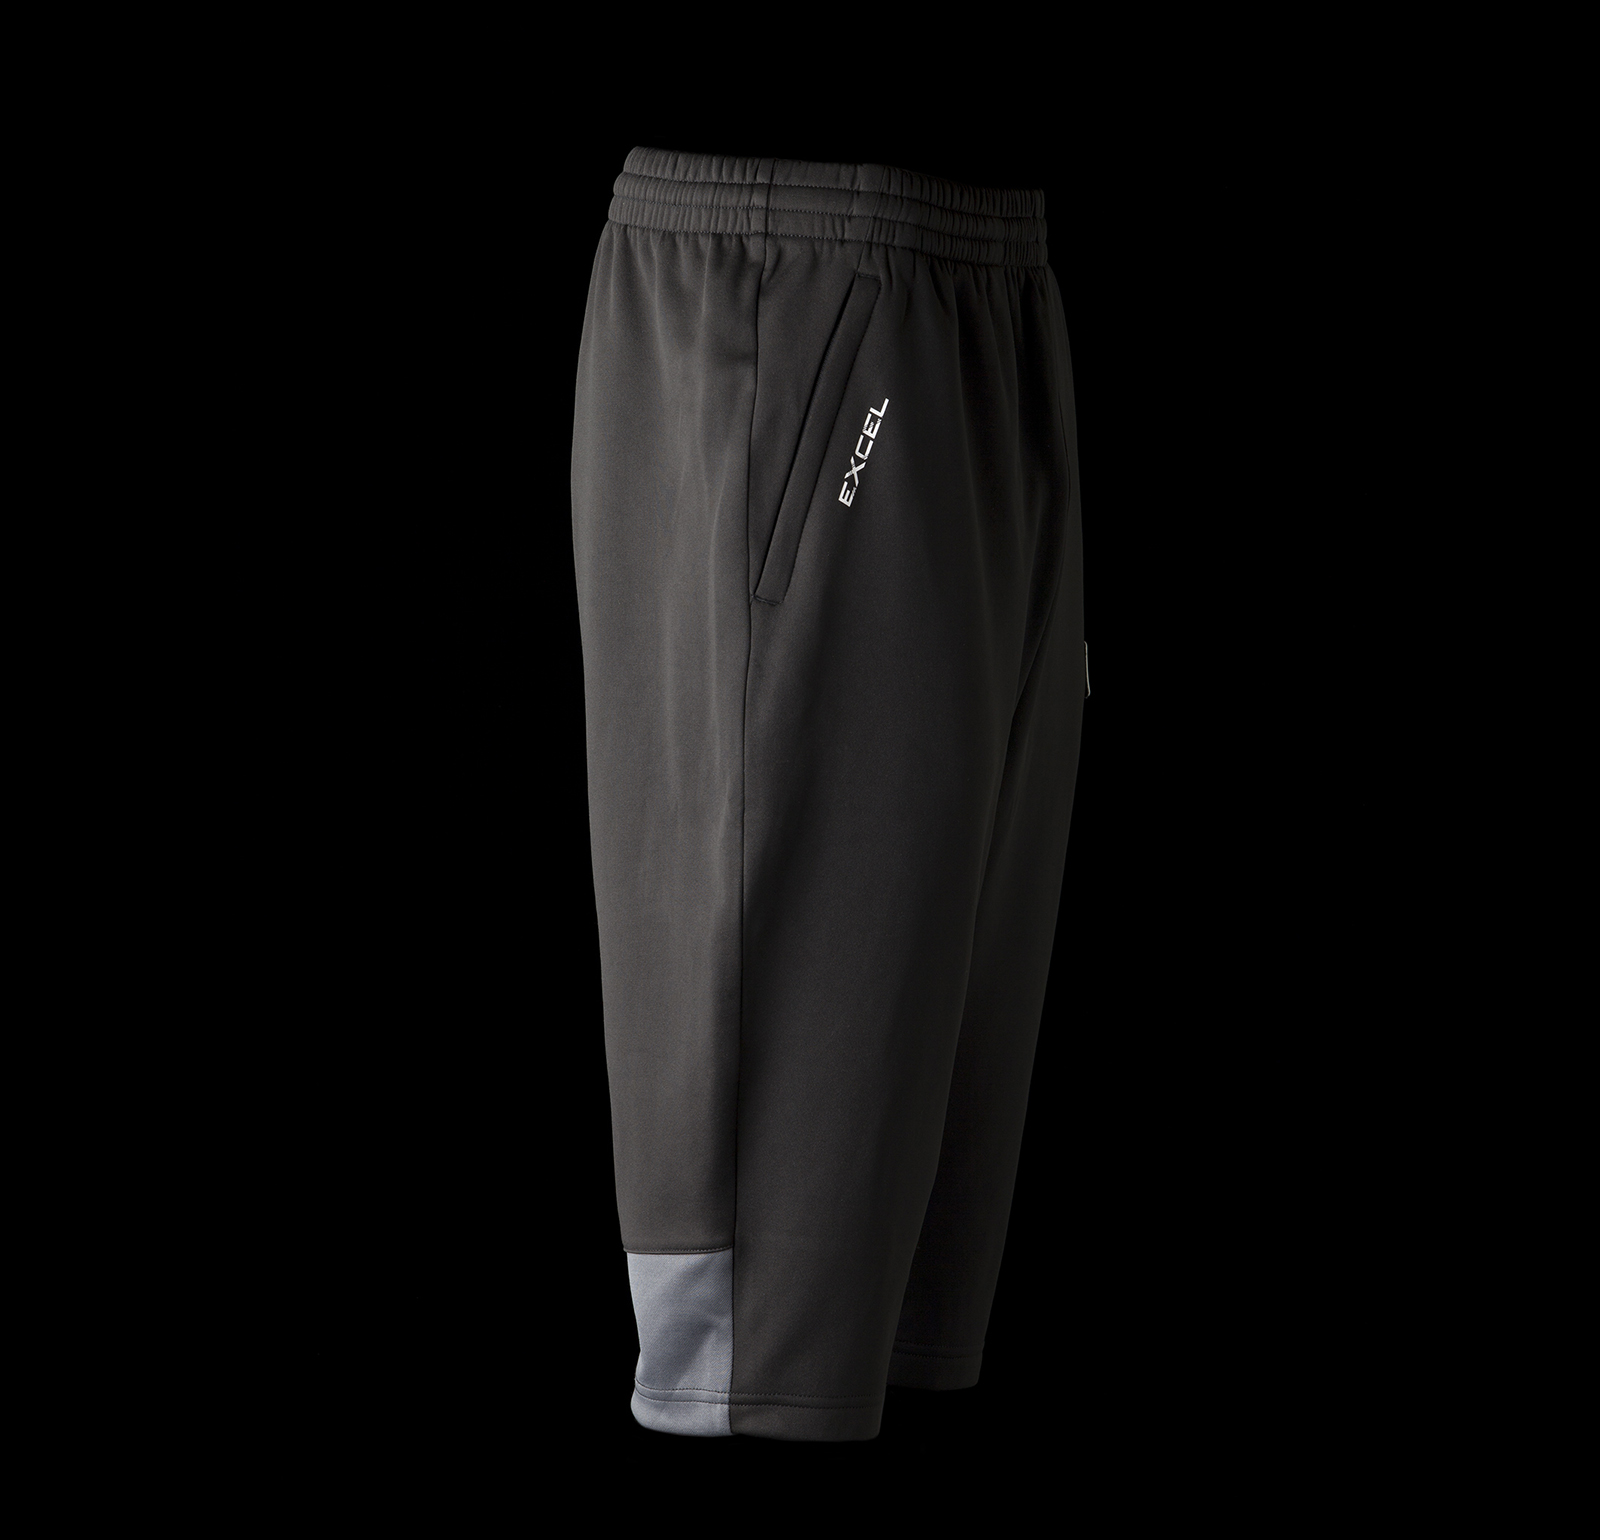 excel-3-4-pant-promo-58